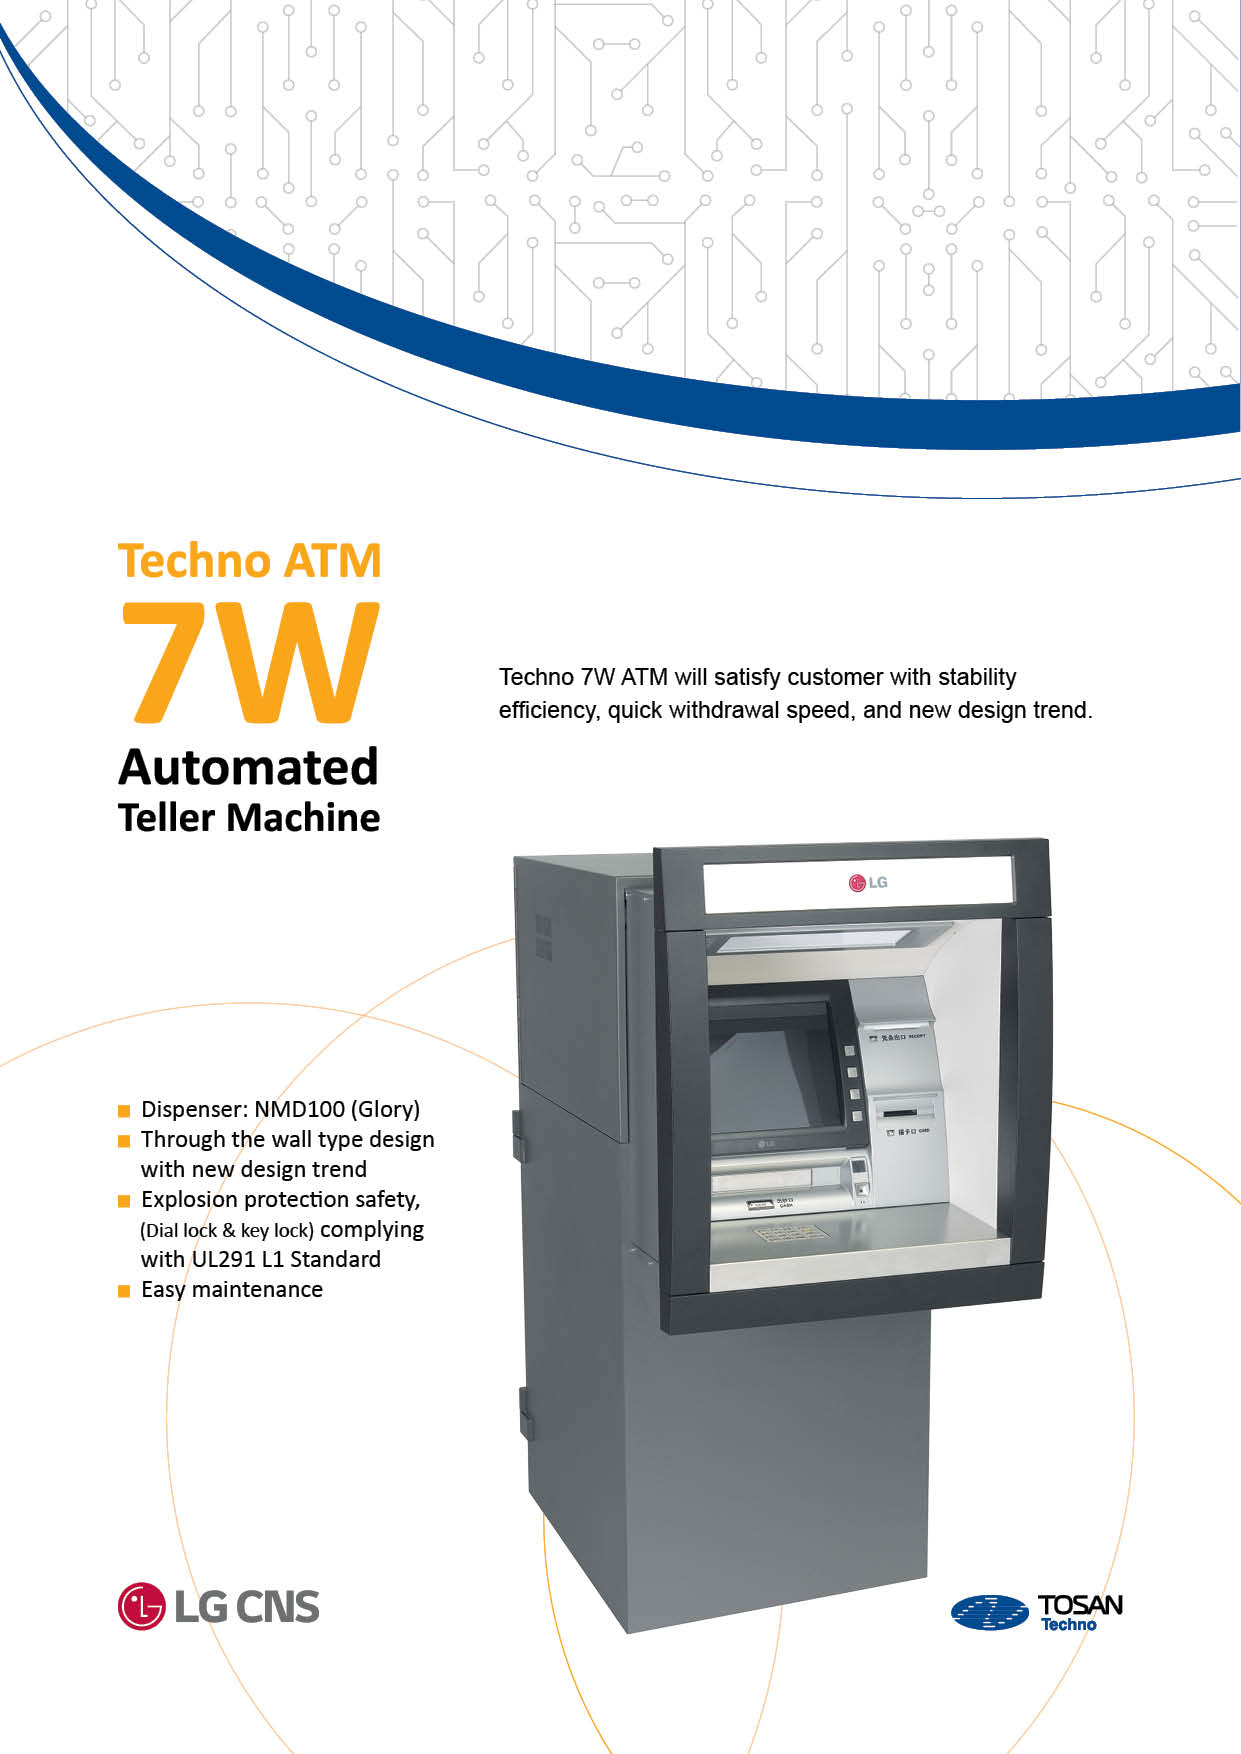 TechnoATM7W